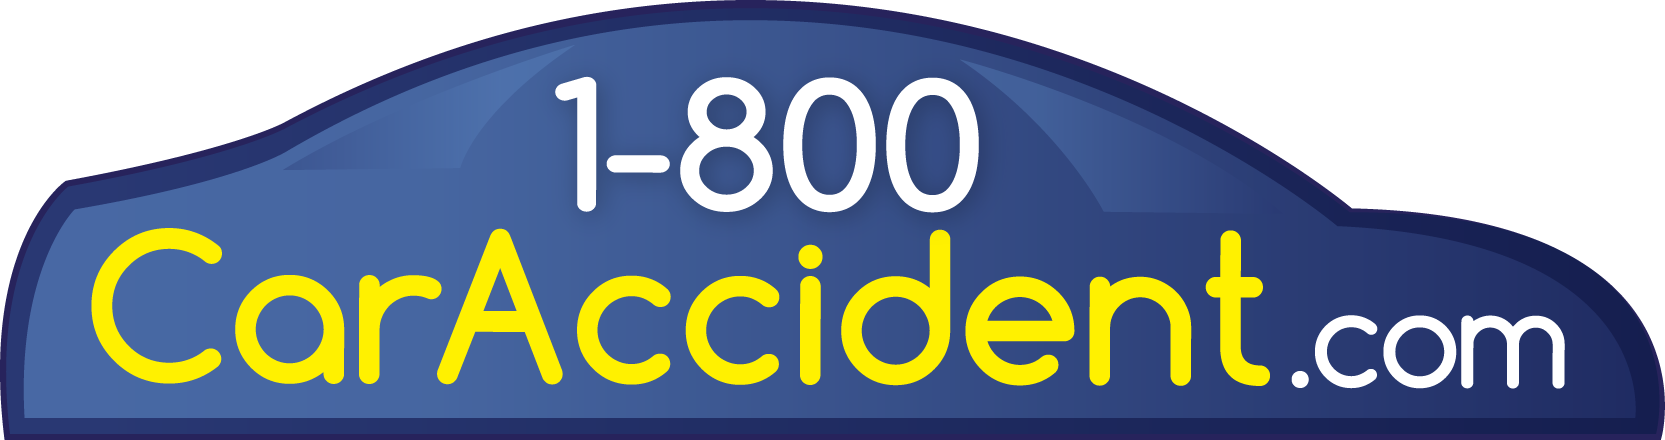 1-800-car-accident logo